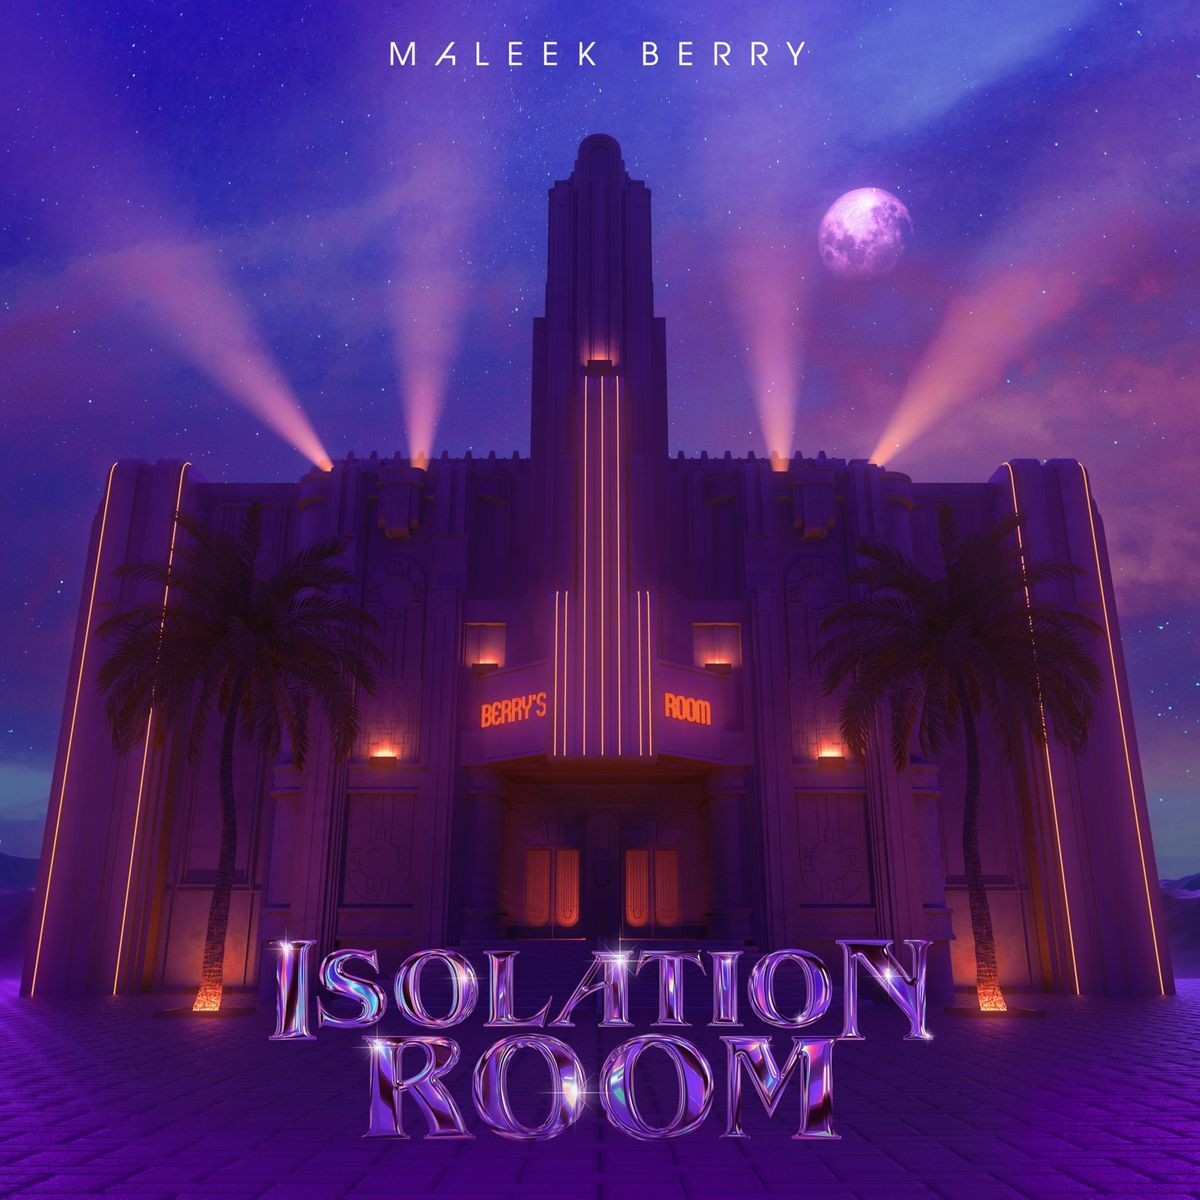 Maleek Berry - Isolation Room [EP]